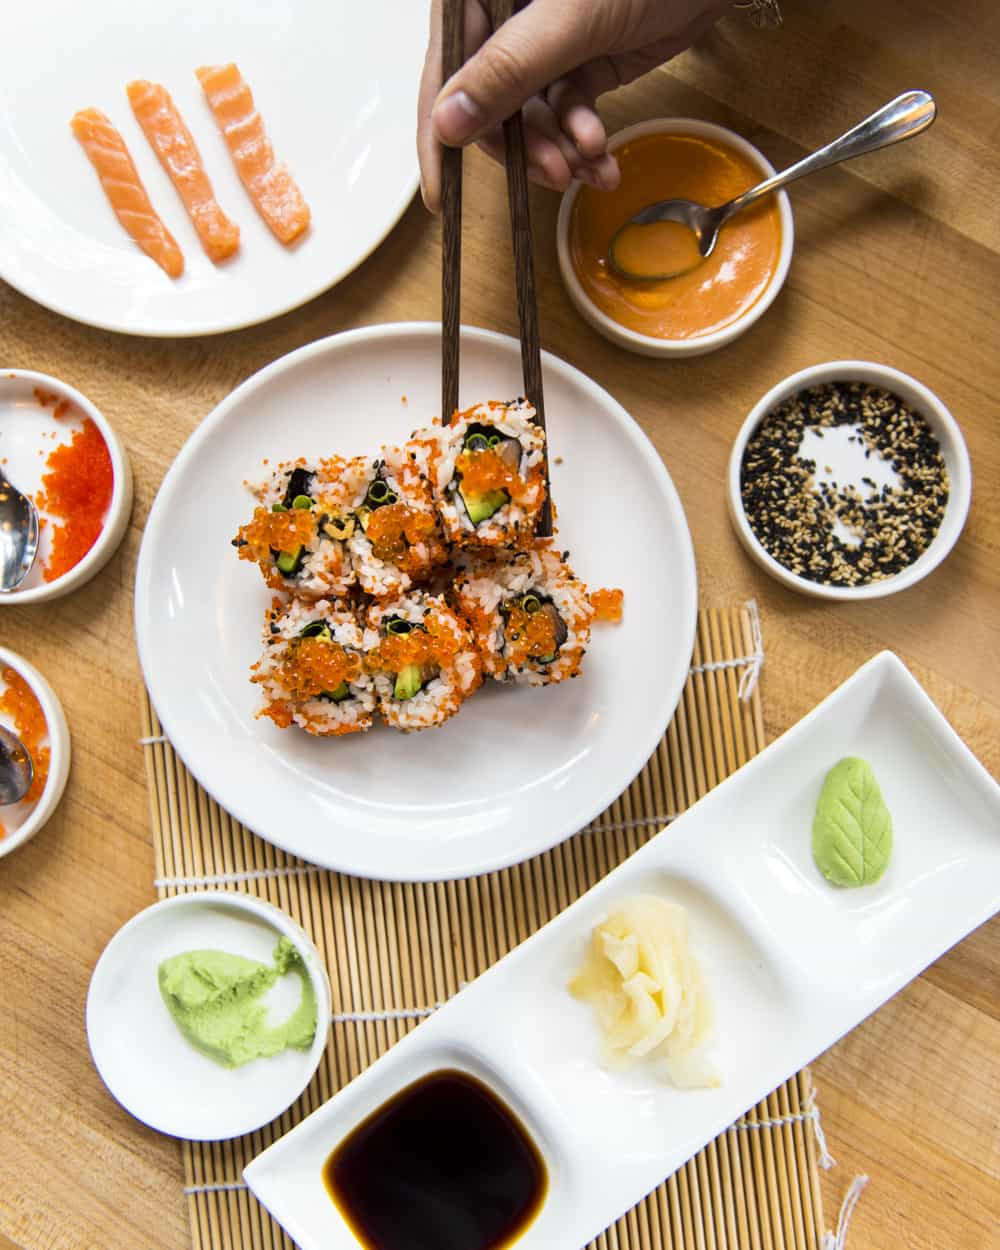 Date Night: Sushi Basics